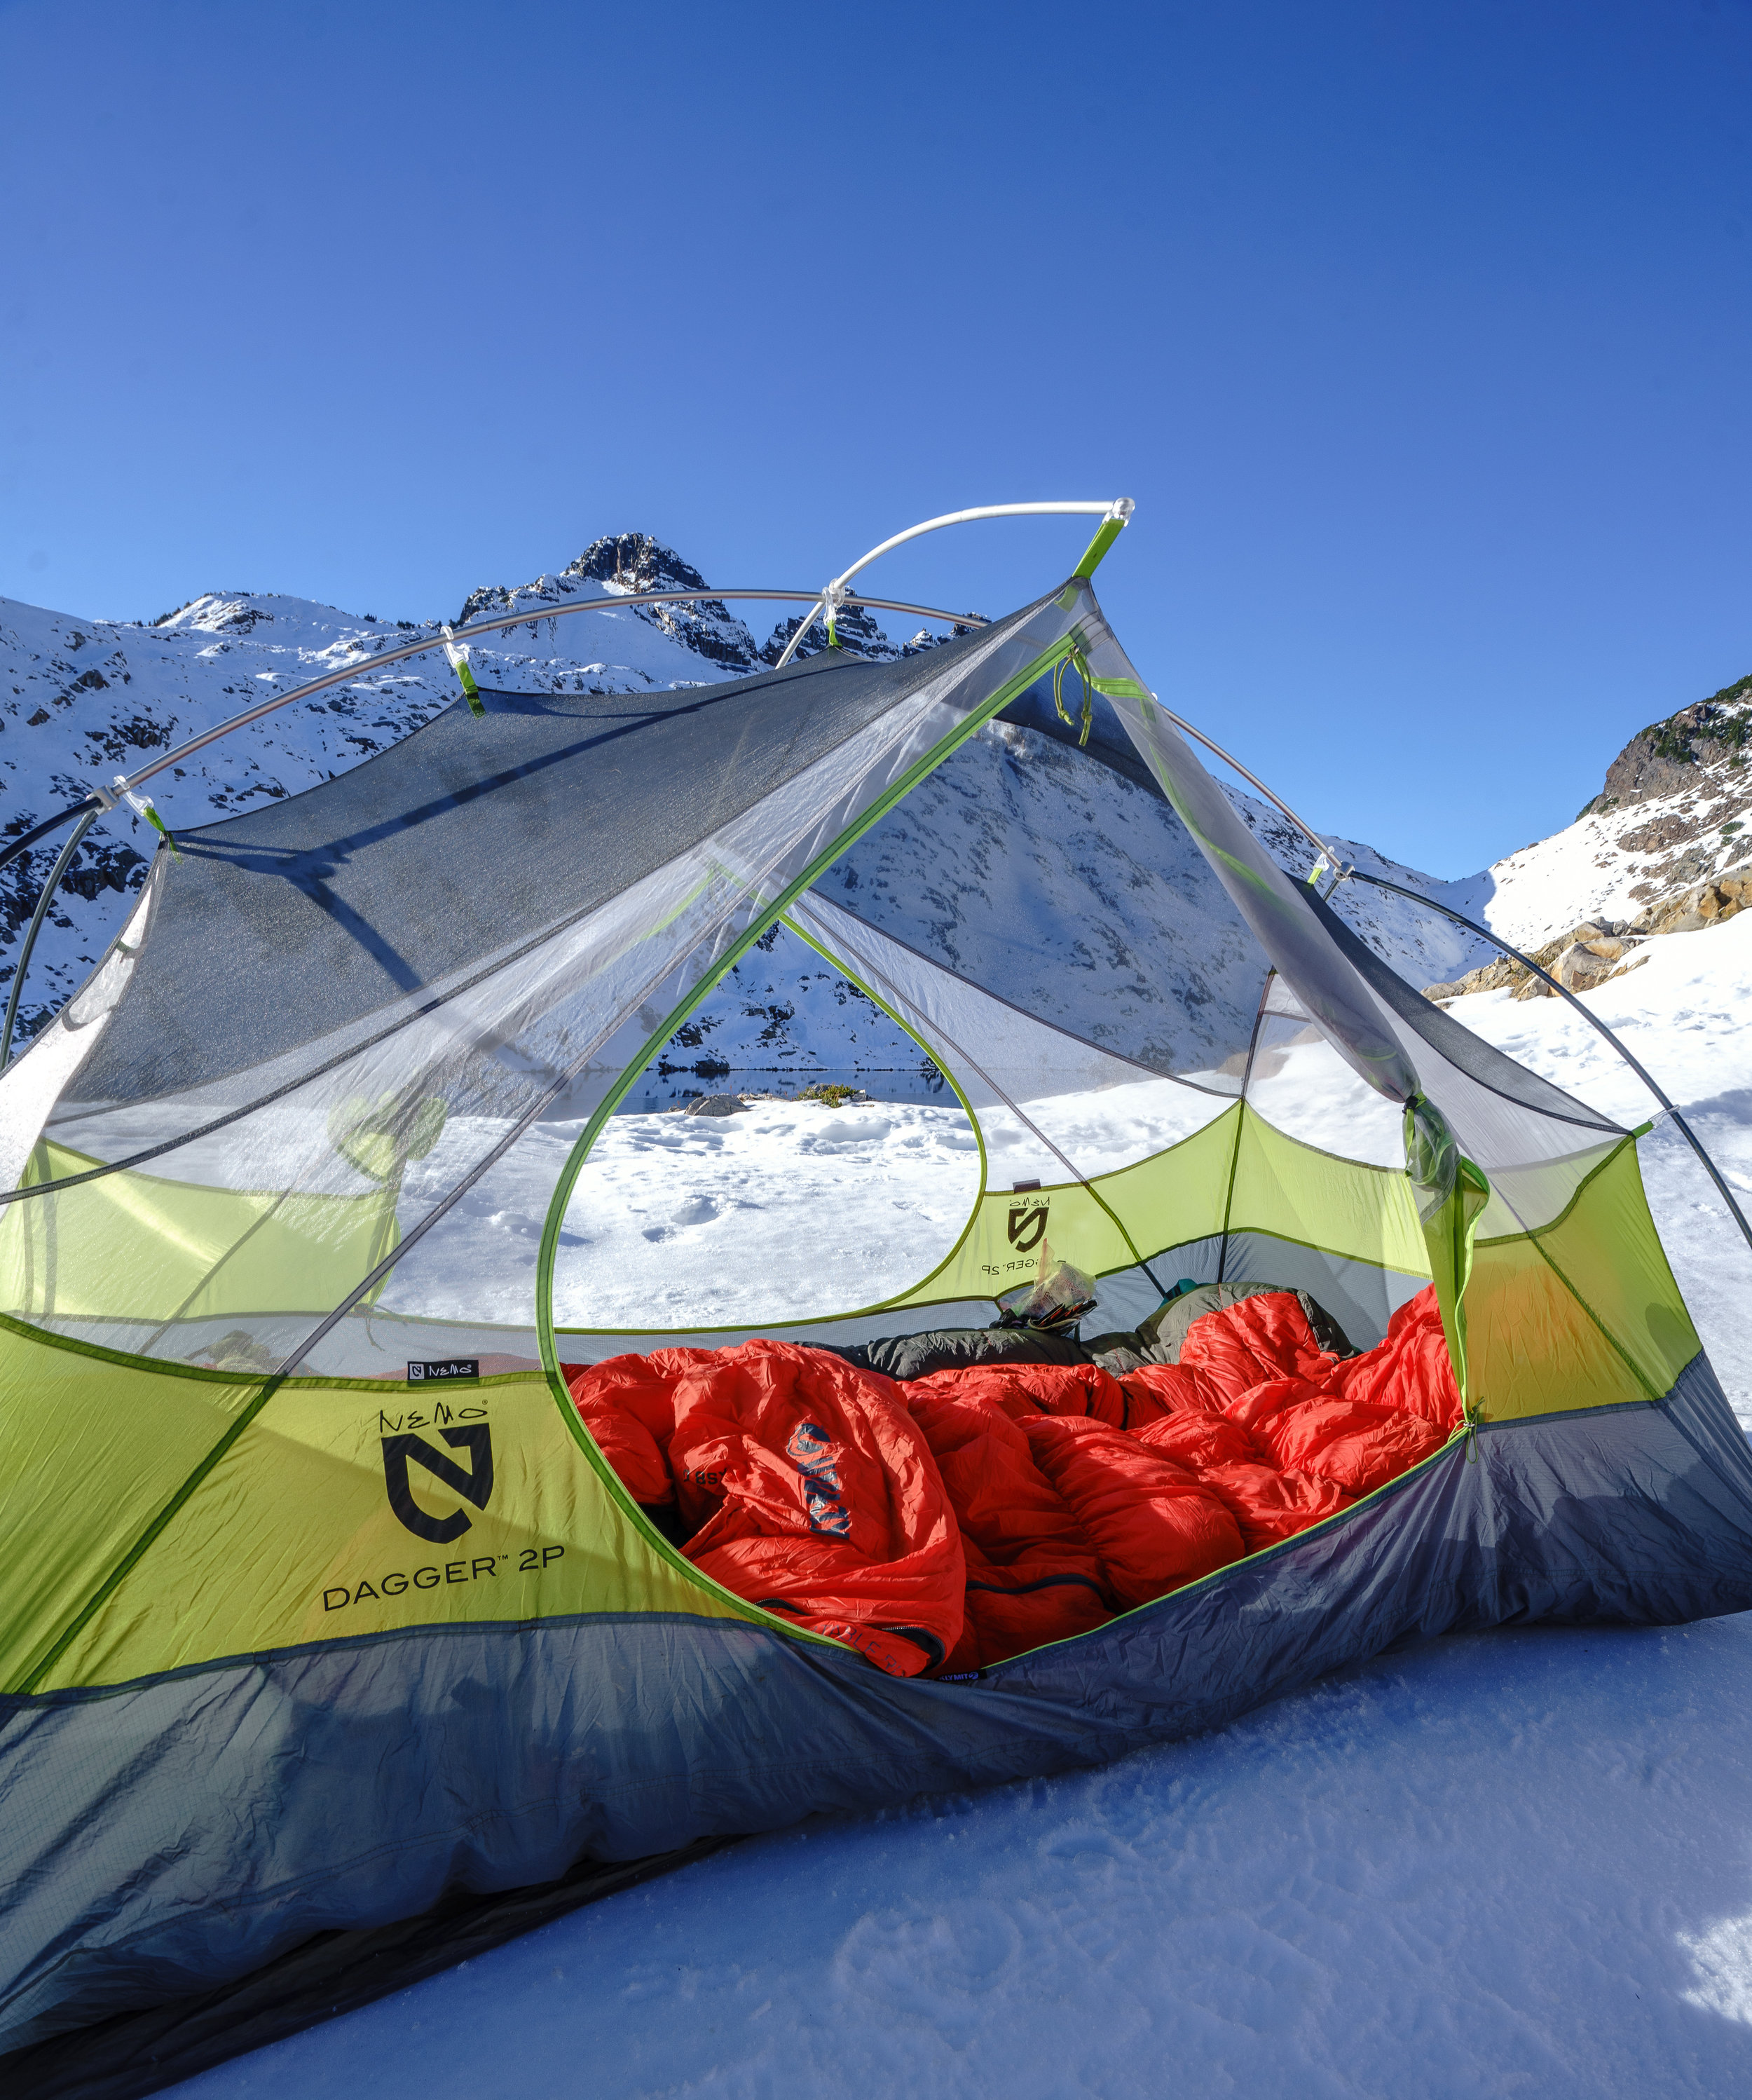 This is the Nemo Dagger 2P and has done fine for snow camping.